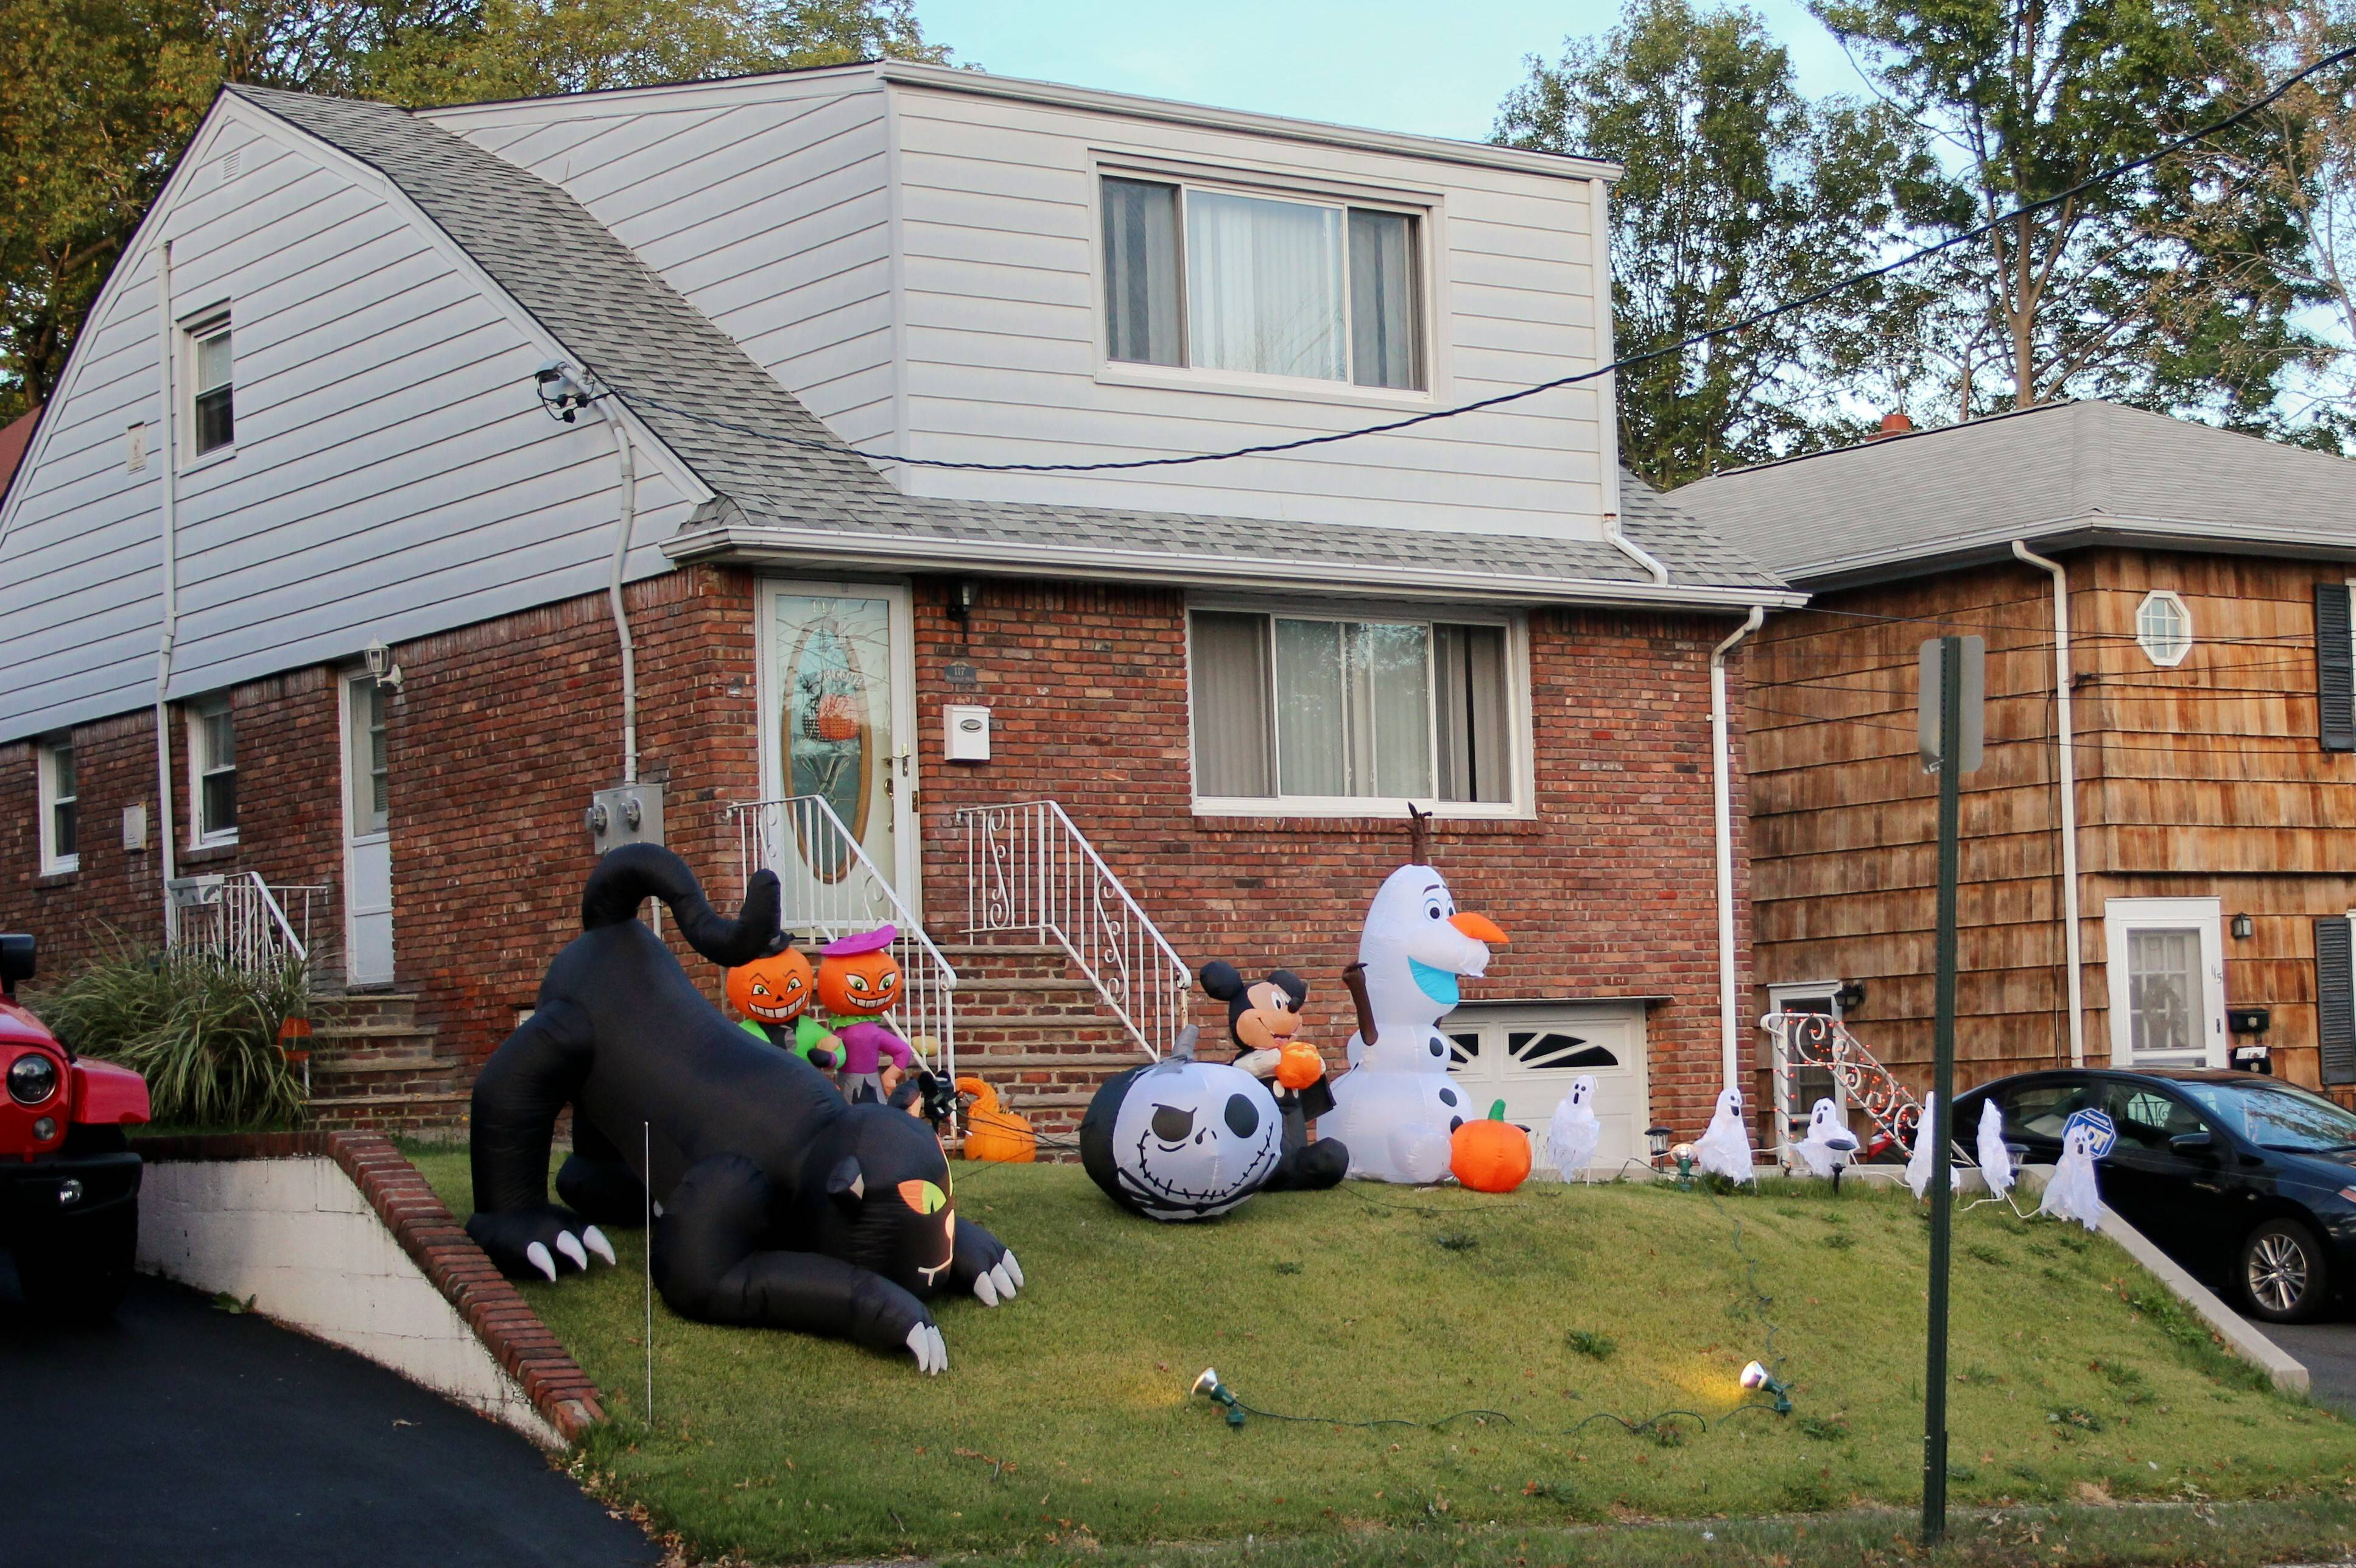 35bf8c798b528814f851_Halloween_Hoover_Ave_Bloomfield.jpg